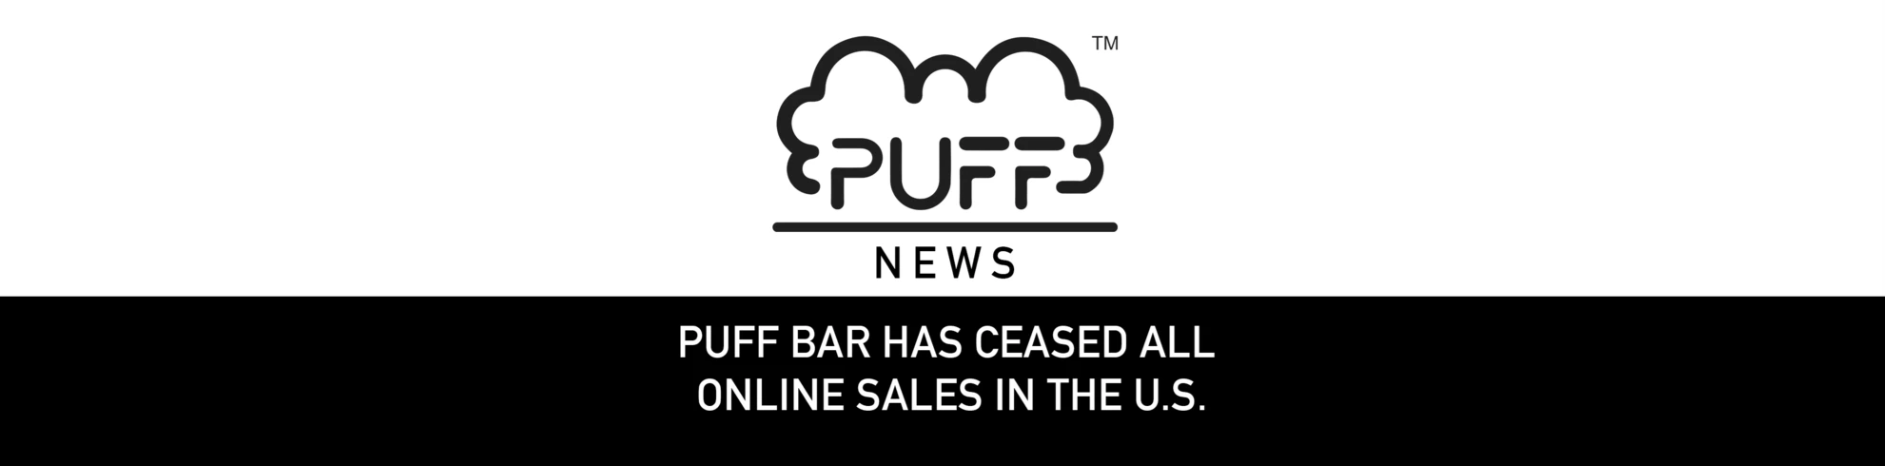 FDA Orders Puff Bar Off The Marketplace